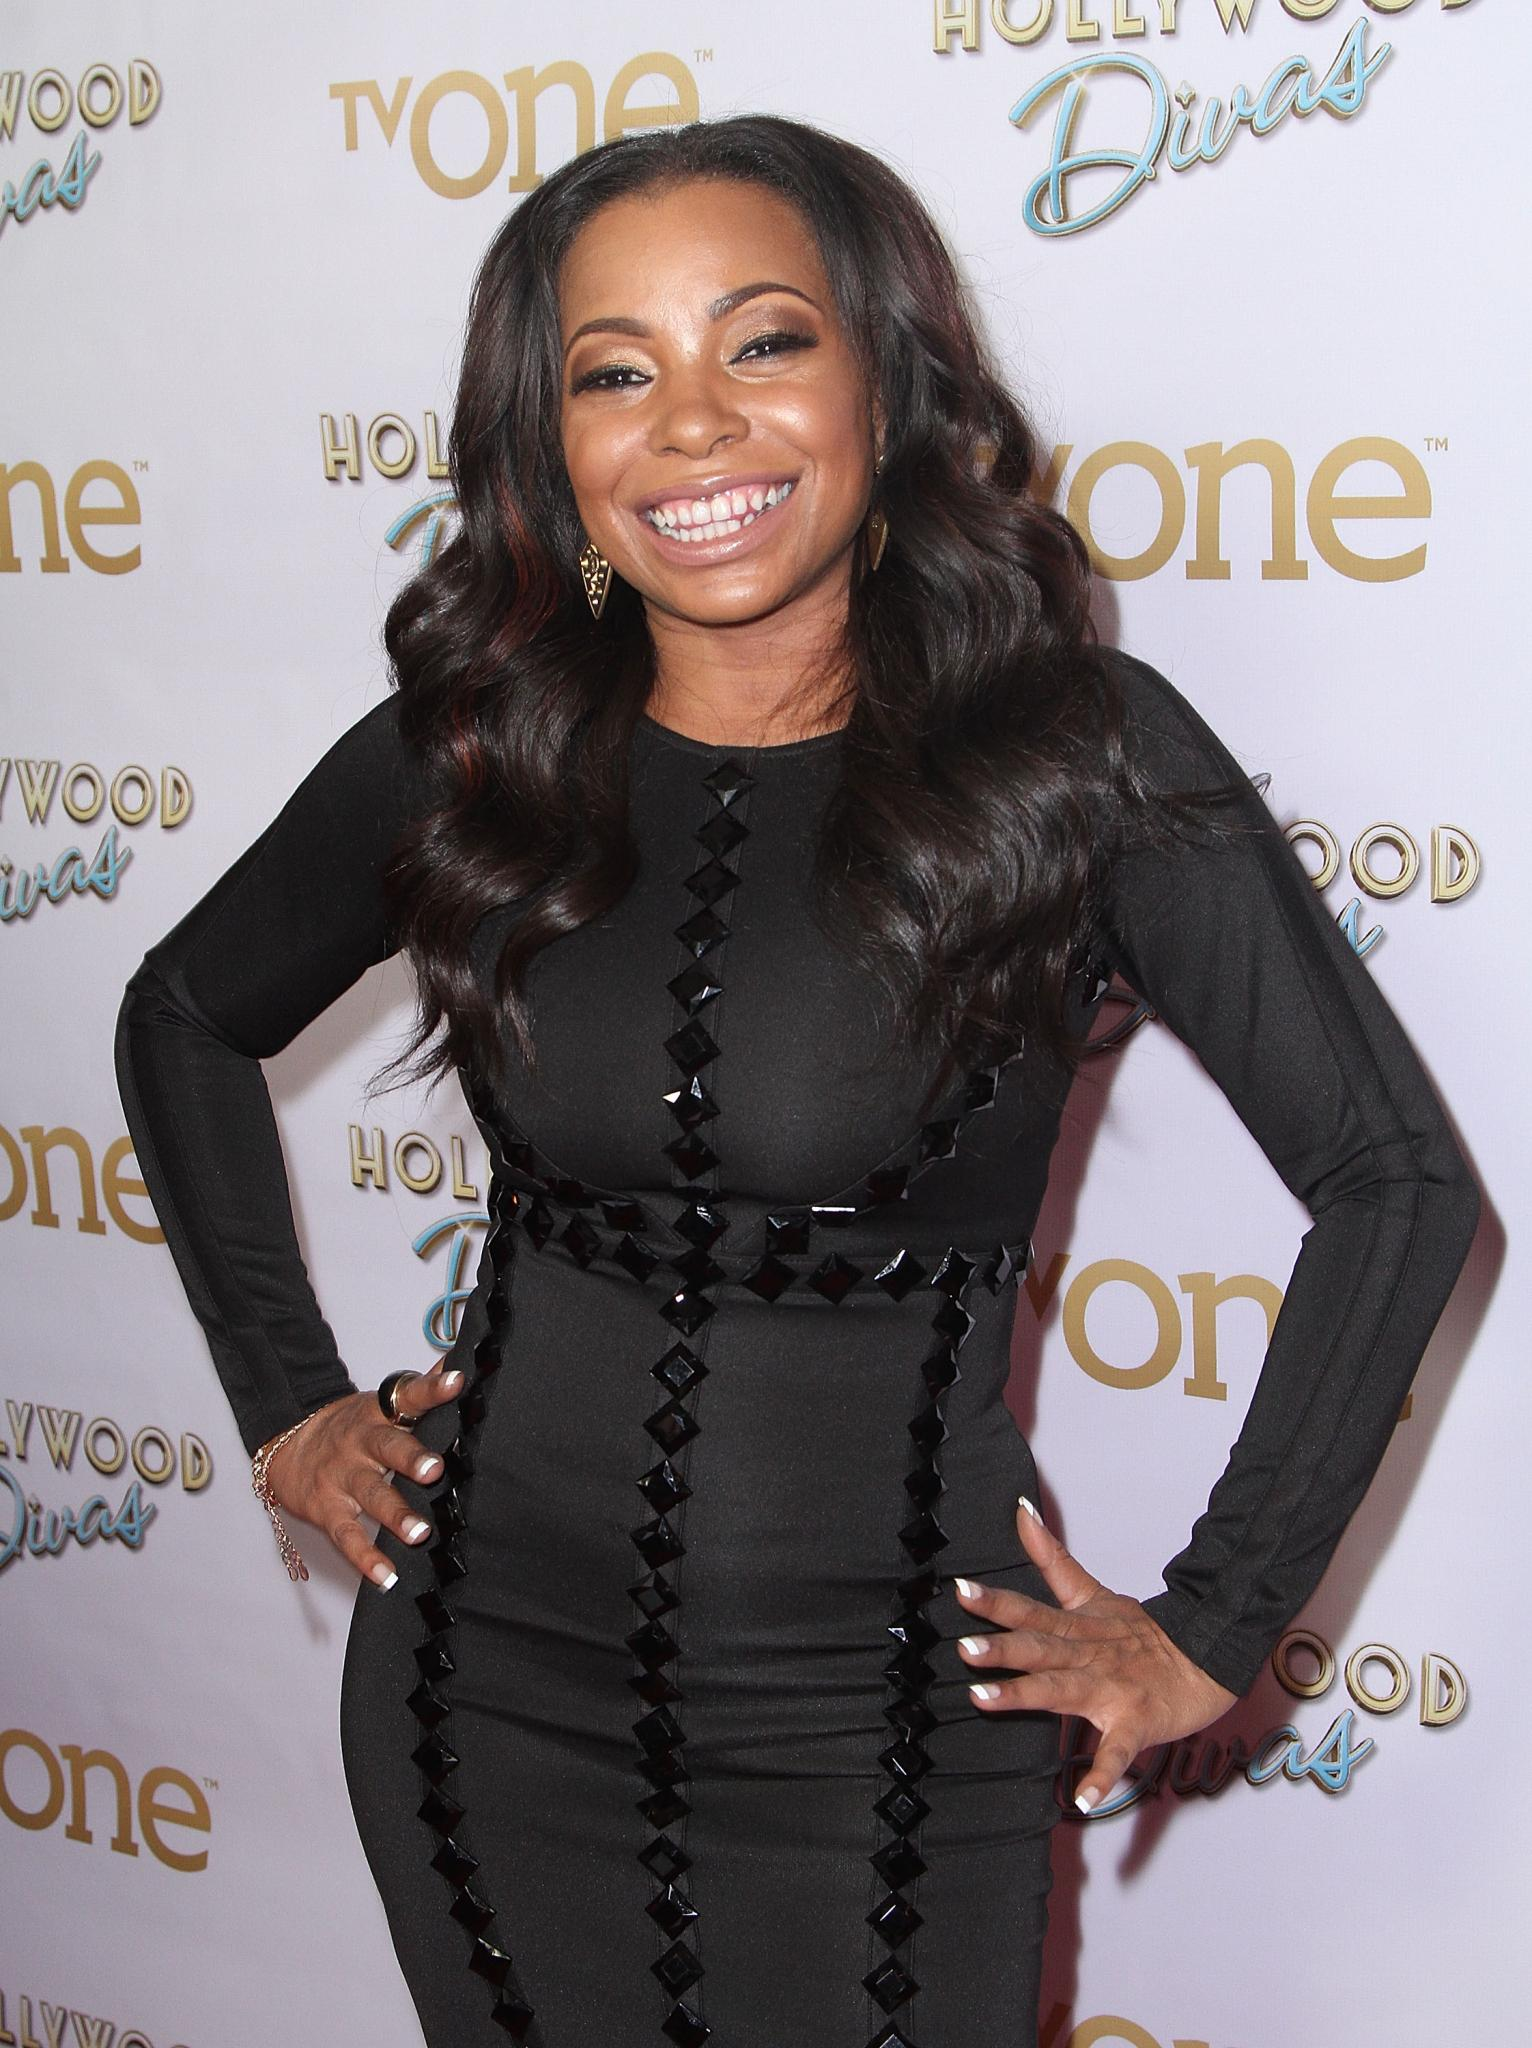 EXCLUSIVE: Paula Jai Parker on Being Homeless, Why She Feels 'Blackballed' By Hollywood